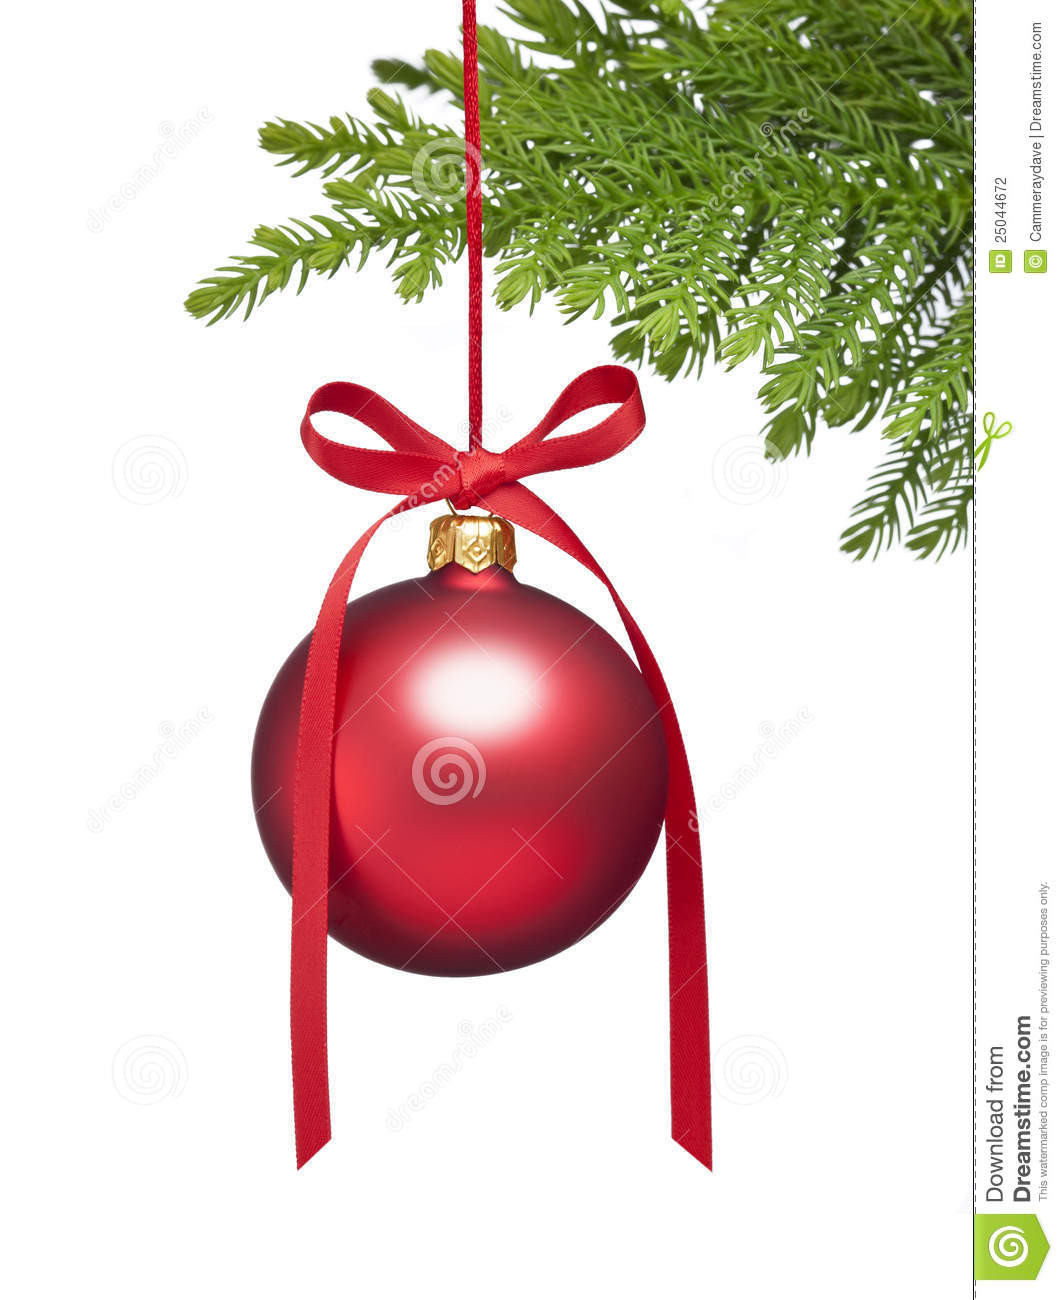 Red Christmas ornaments Lovely Red Christmas Tree ornaments – Happy Holidays Of Delightful 47 Photos Red Christmas ornaments